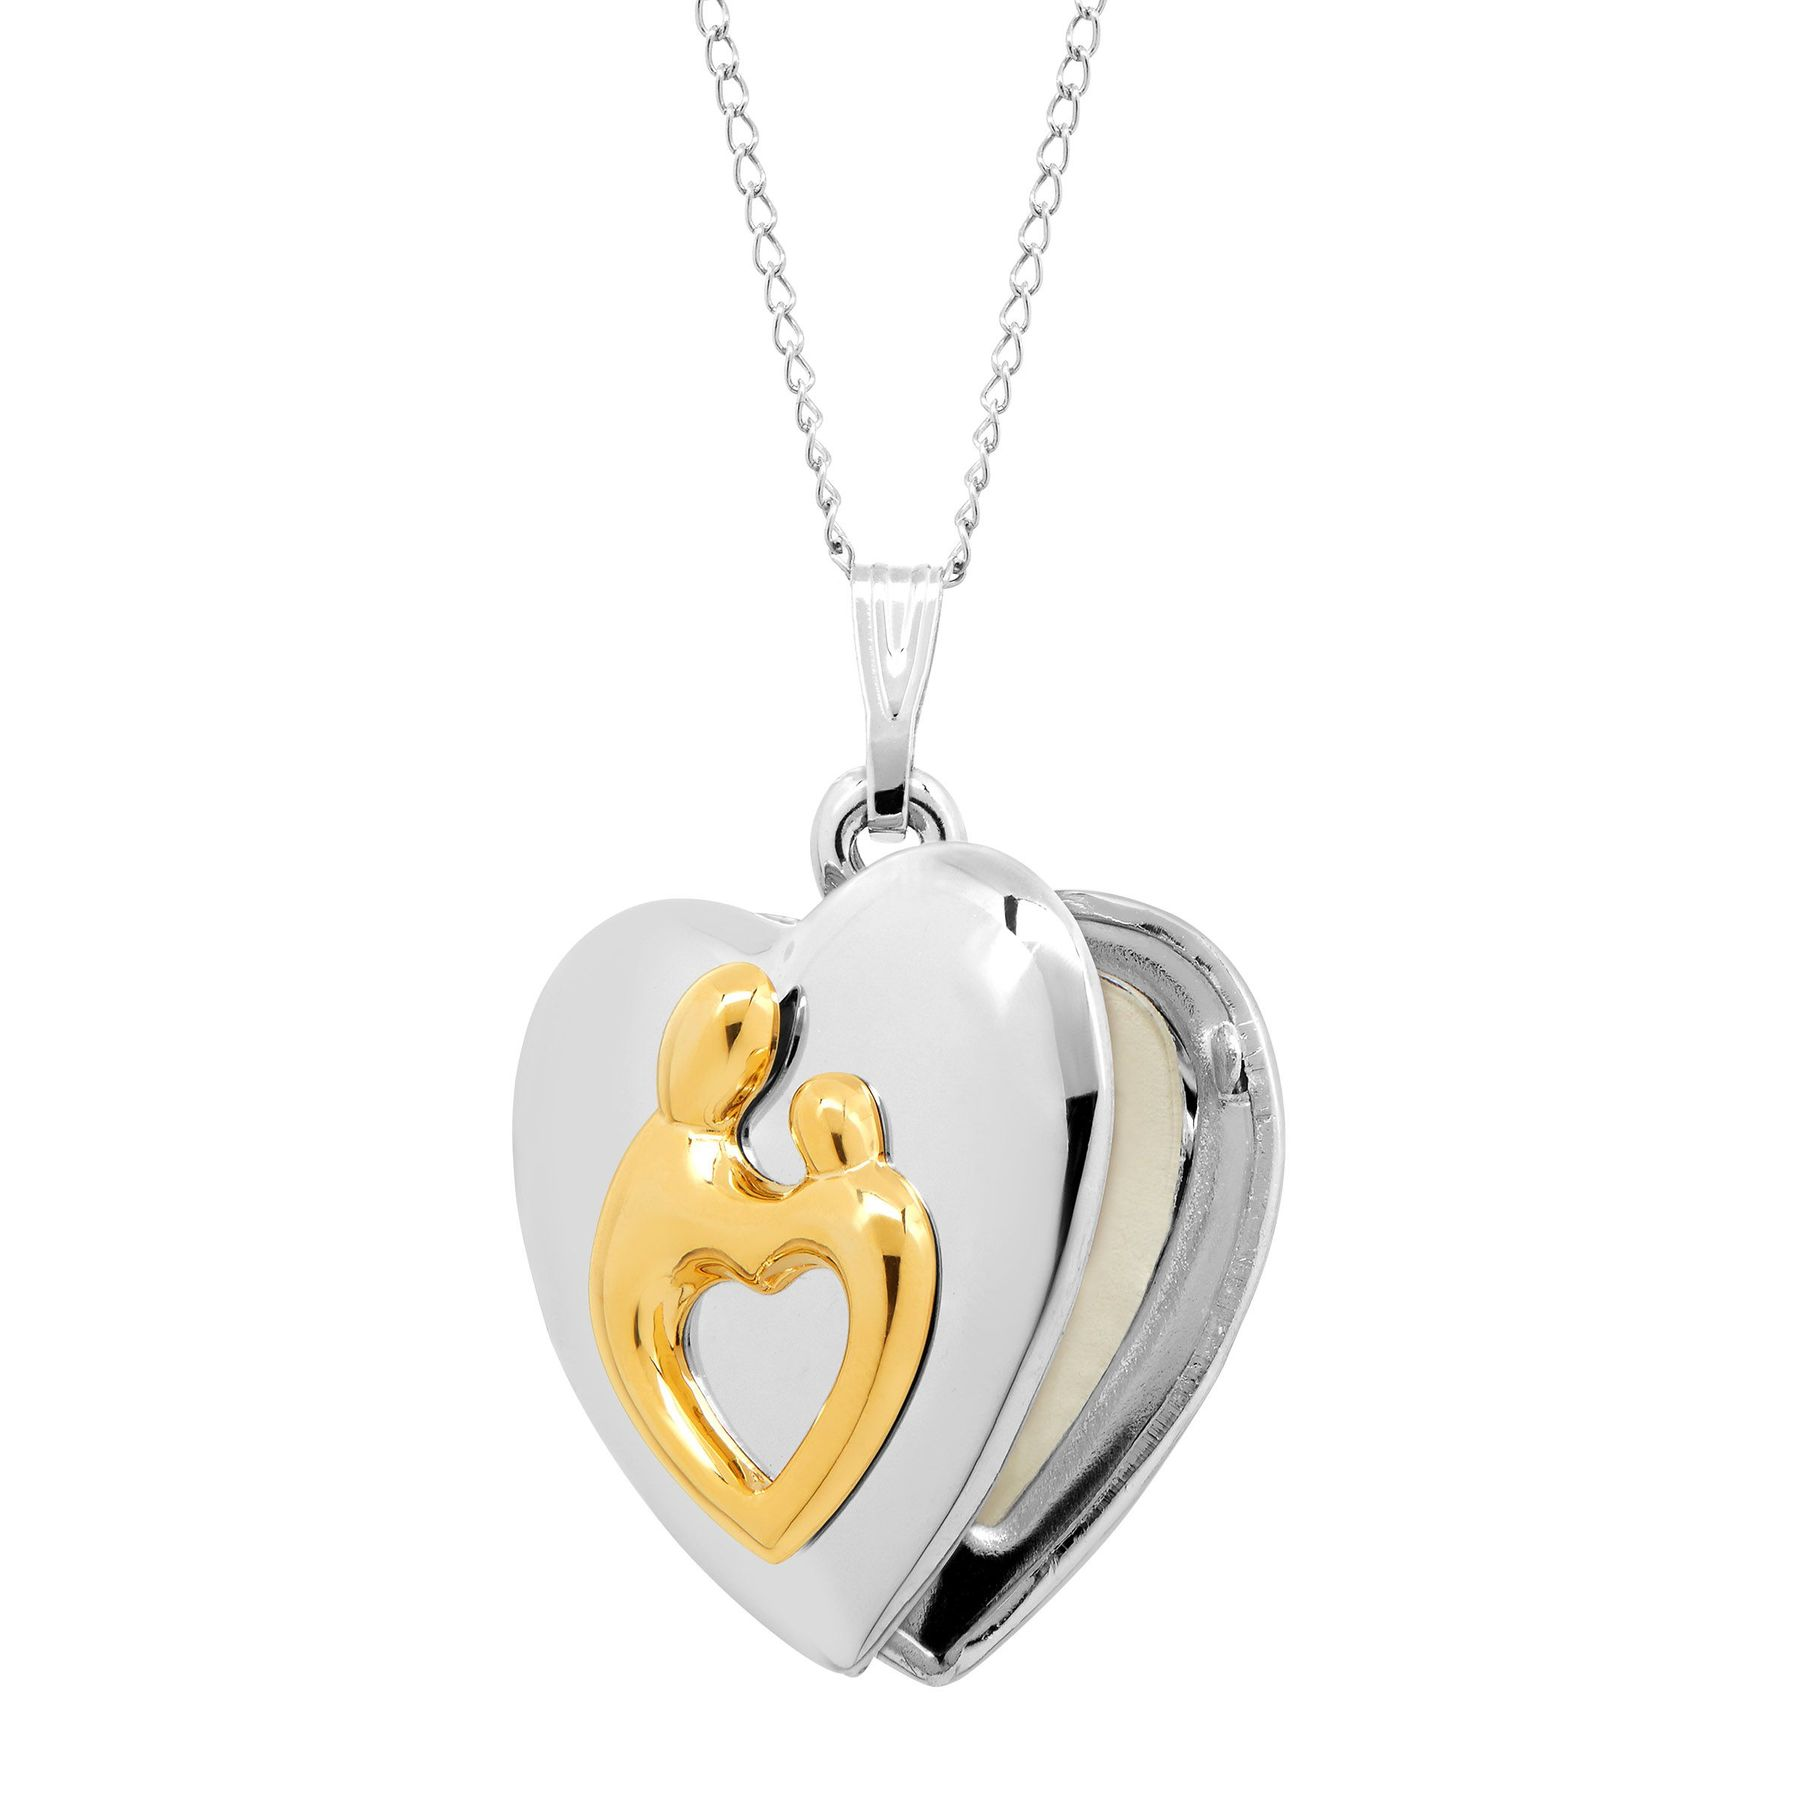 online om pendants chain lockets gold women at jewellery for cz diamond prices in gifts plated men buy american low with dp